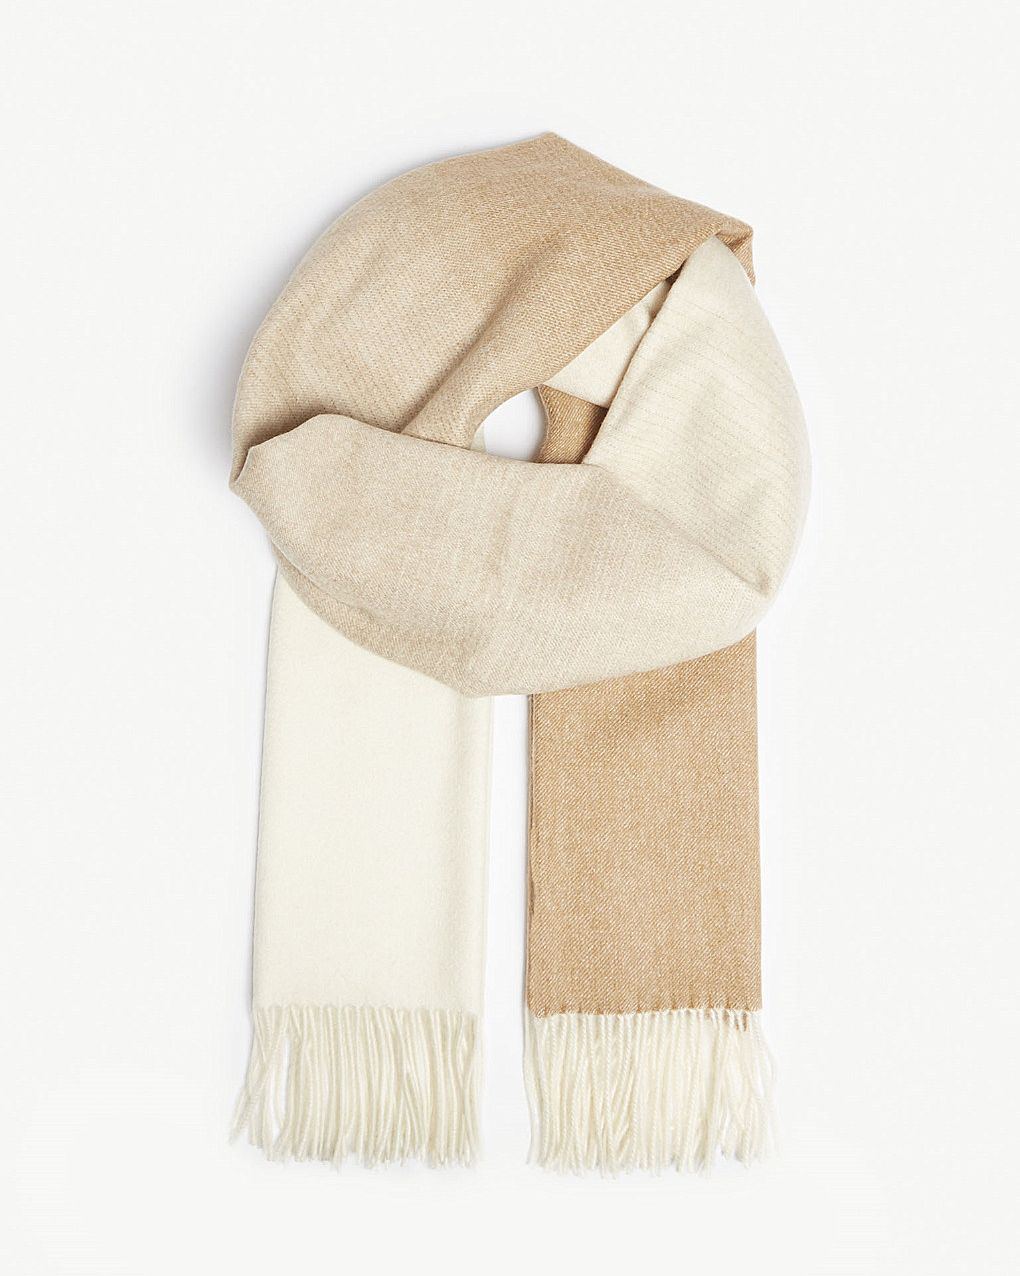 Beige clothing and accessories